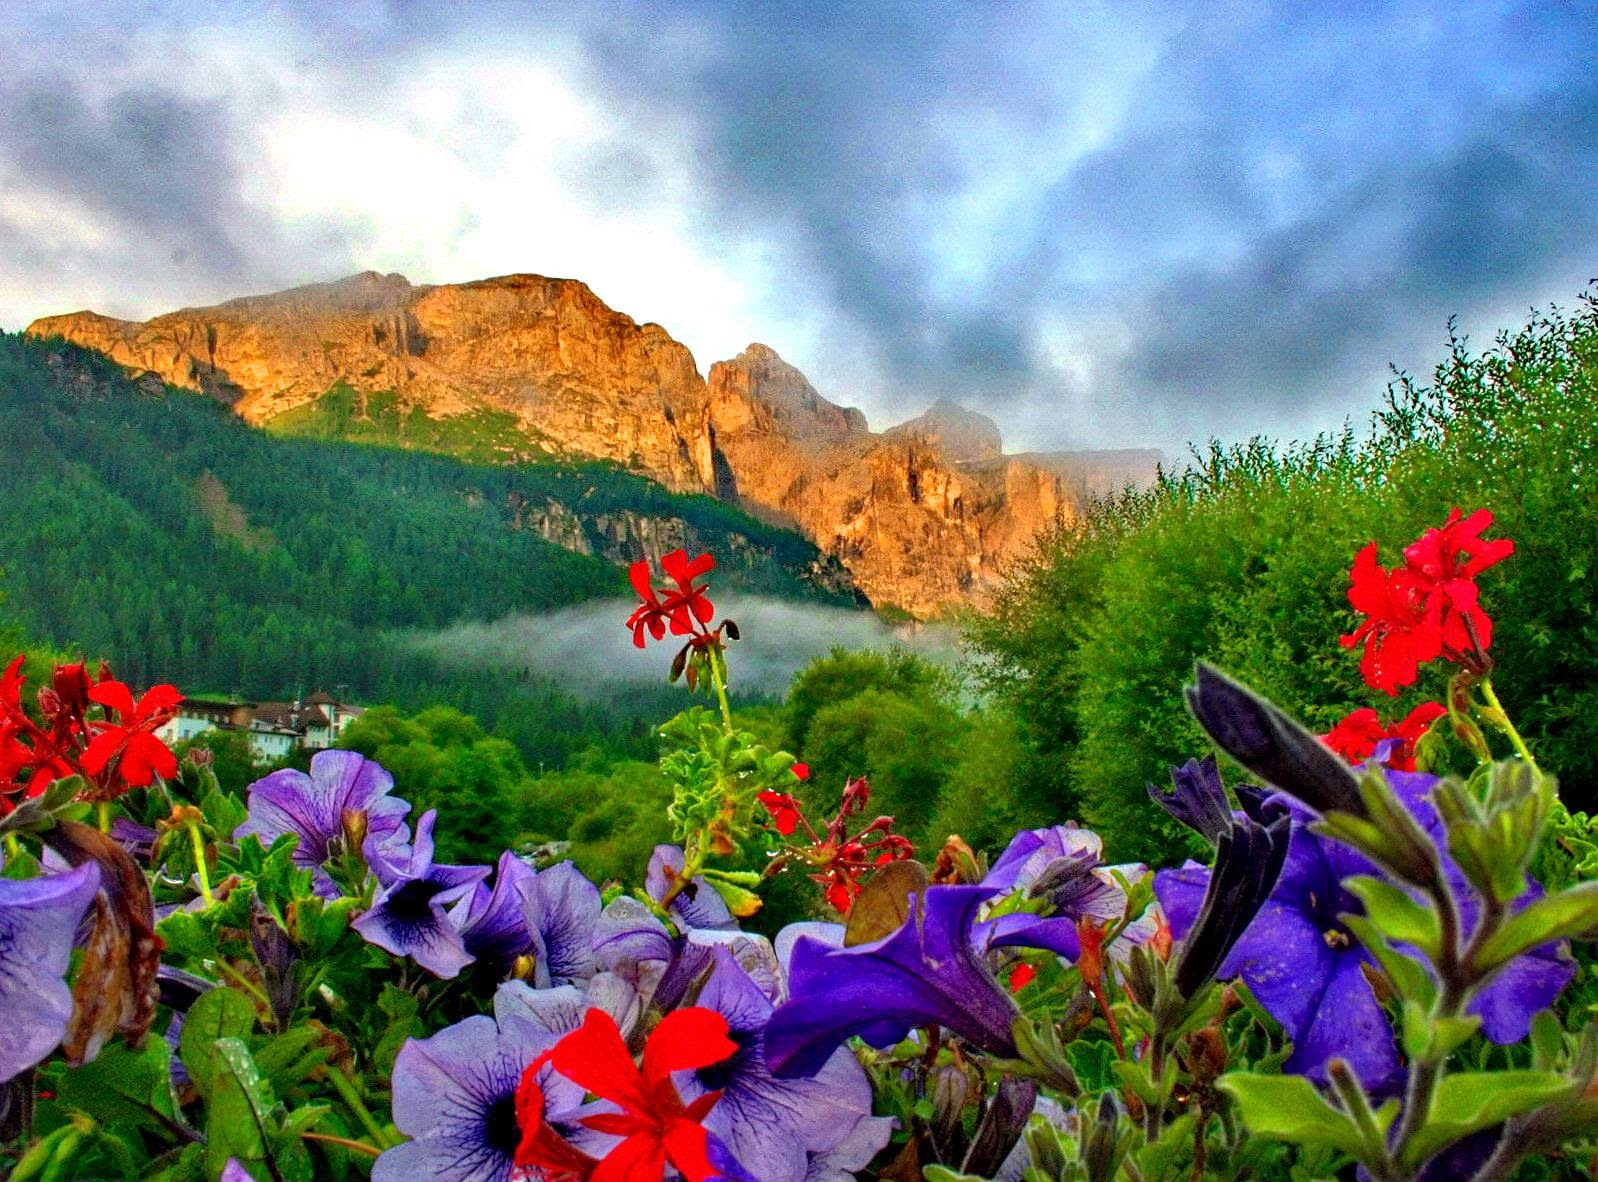 Wallpaper Mountain Flower Extreme Beauty Of Nature